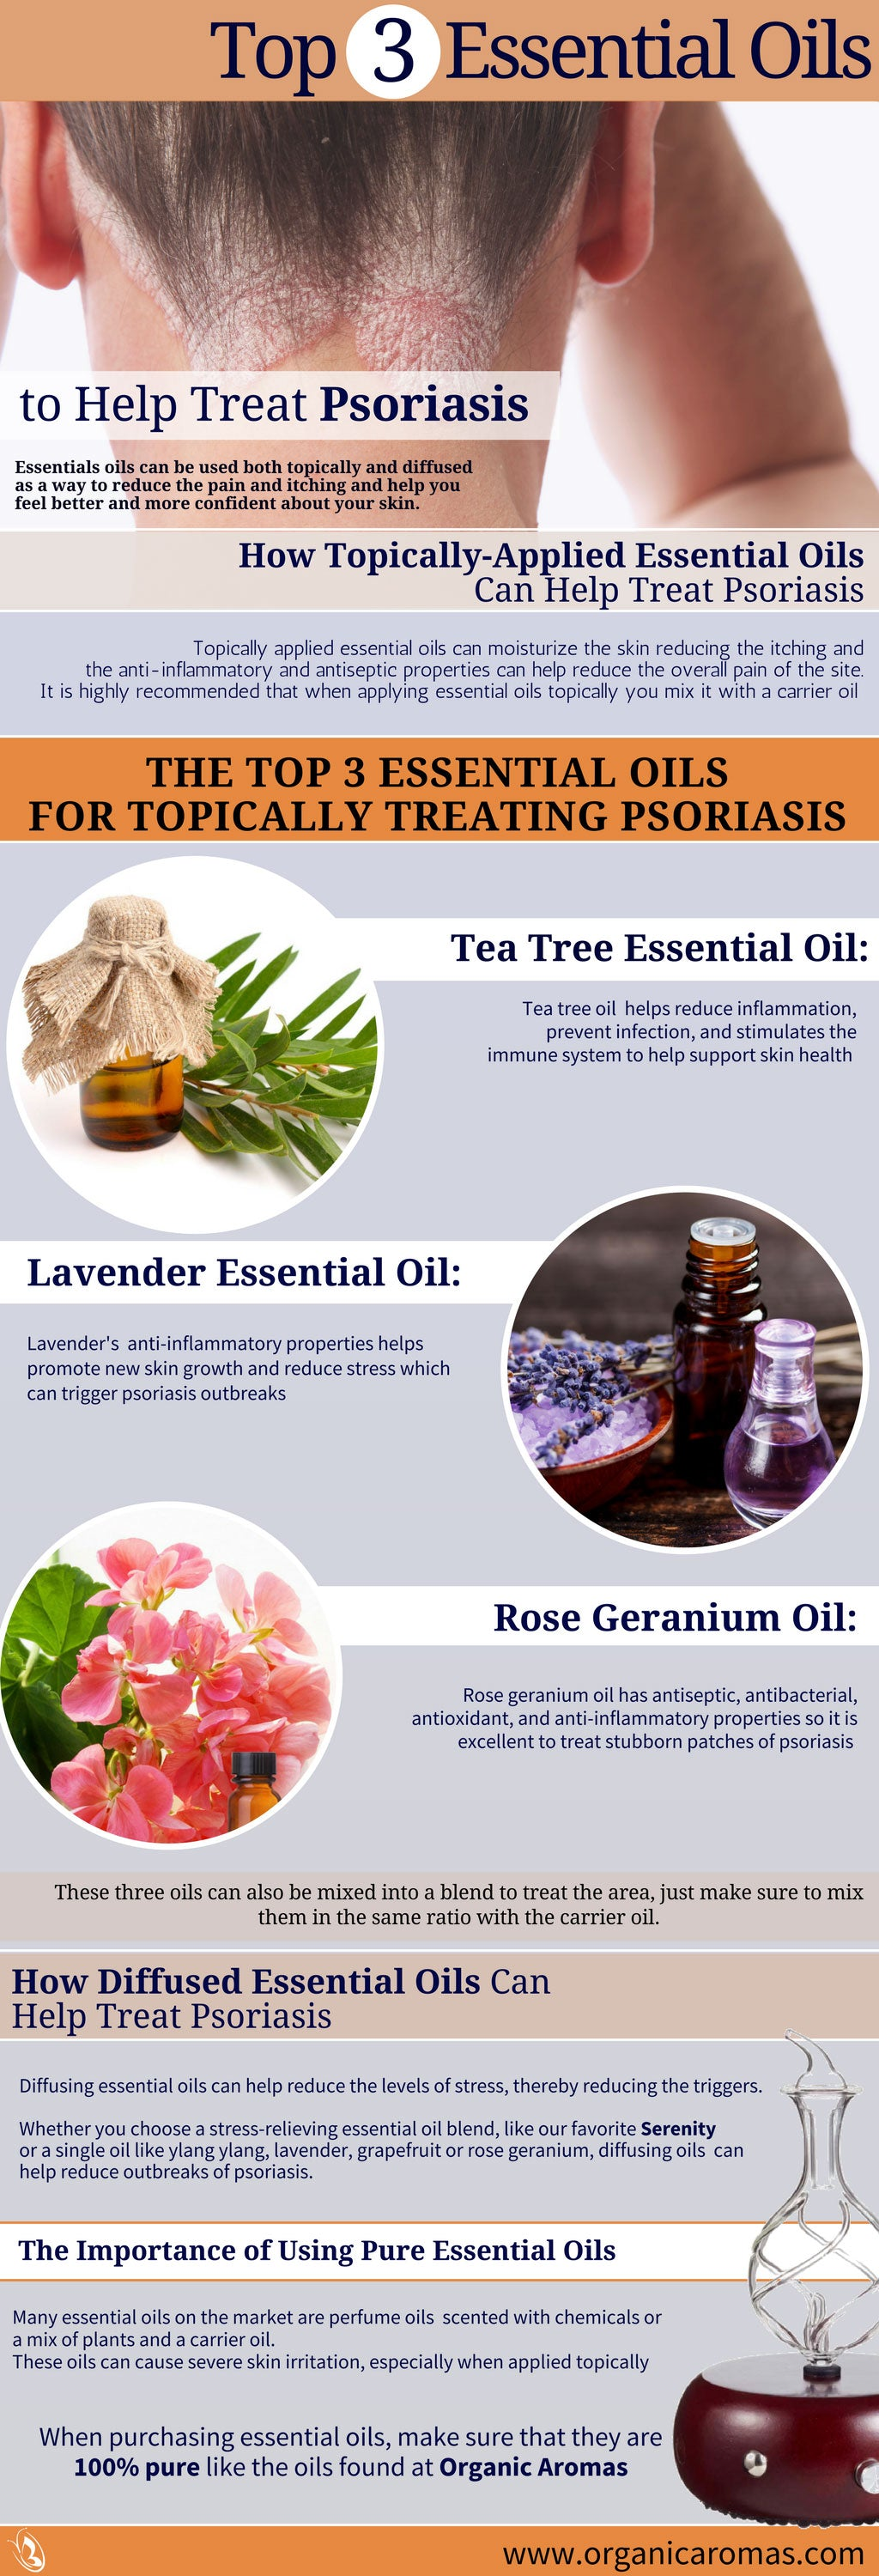 What Are The Best Essential Oils You Can Use For Psoriasis?